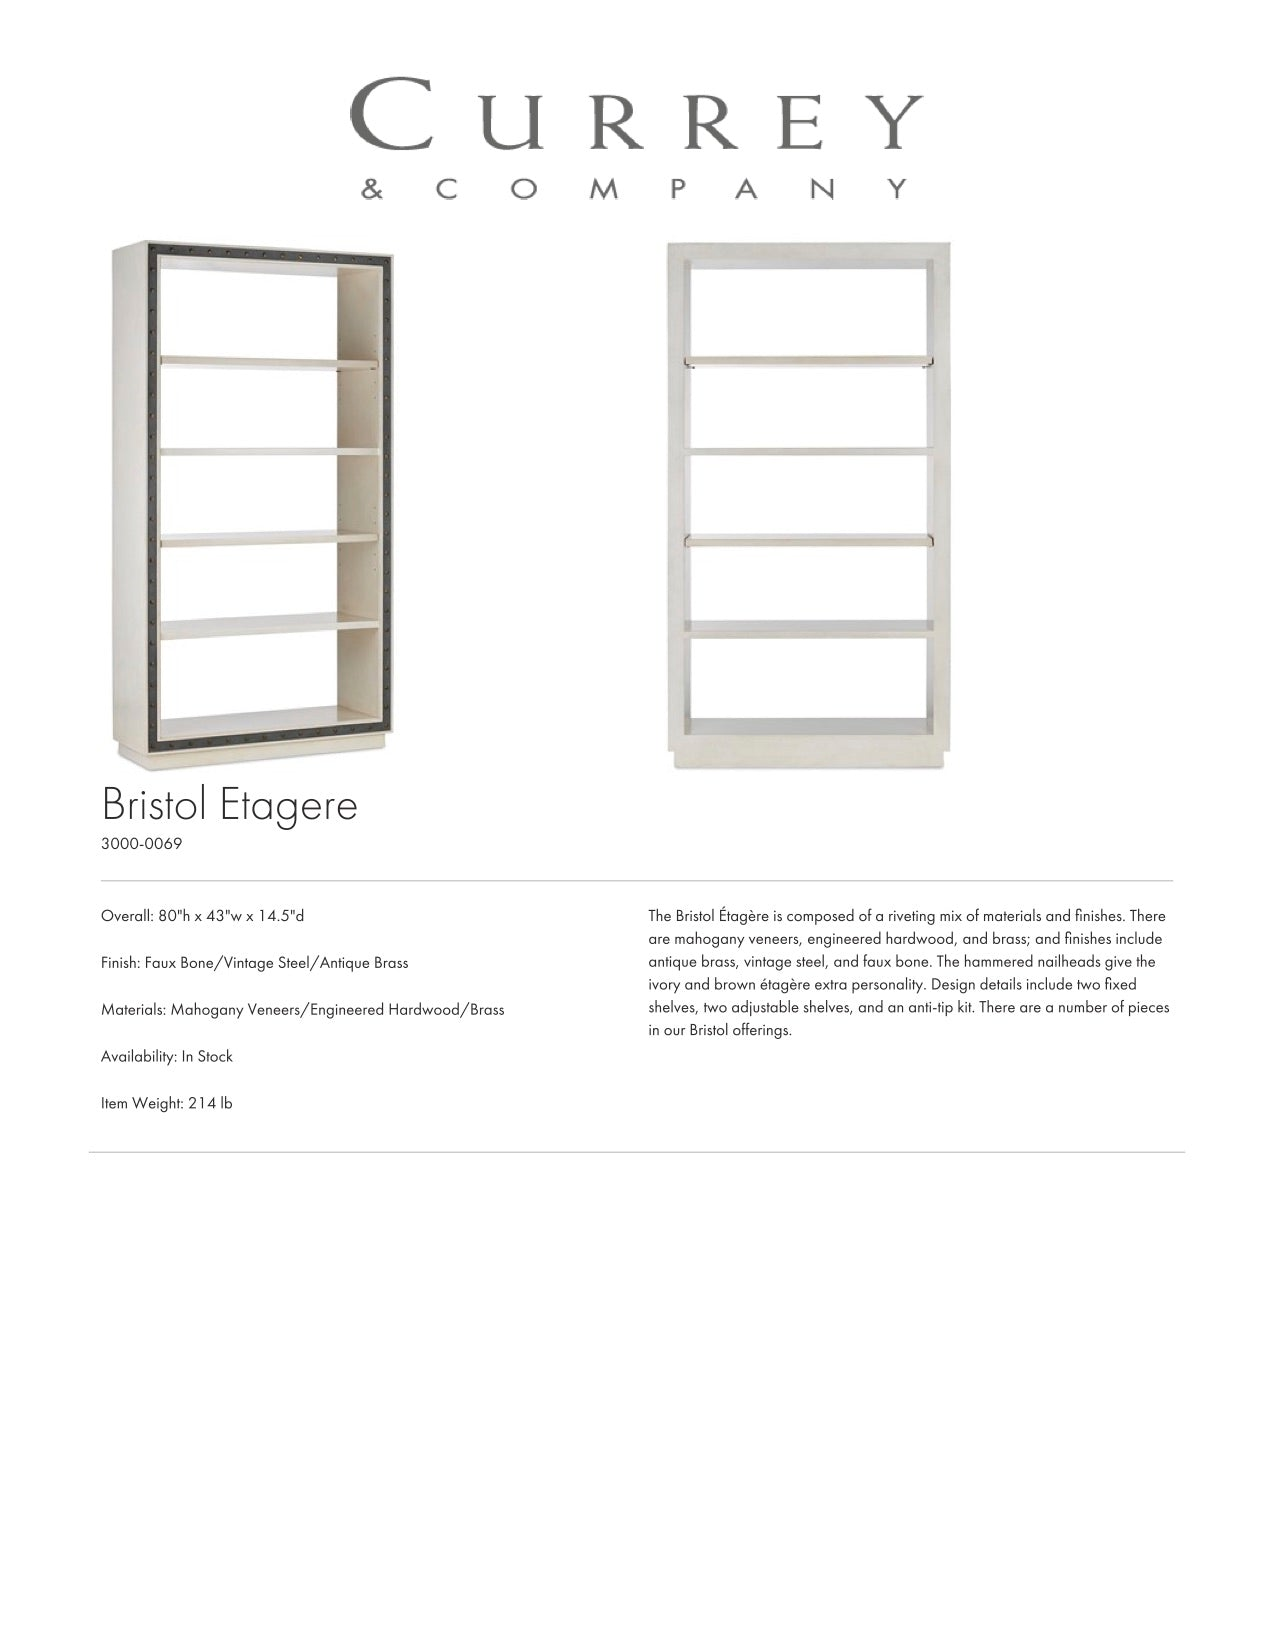 Currey & Company Bristol Etagere Tearsheet